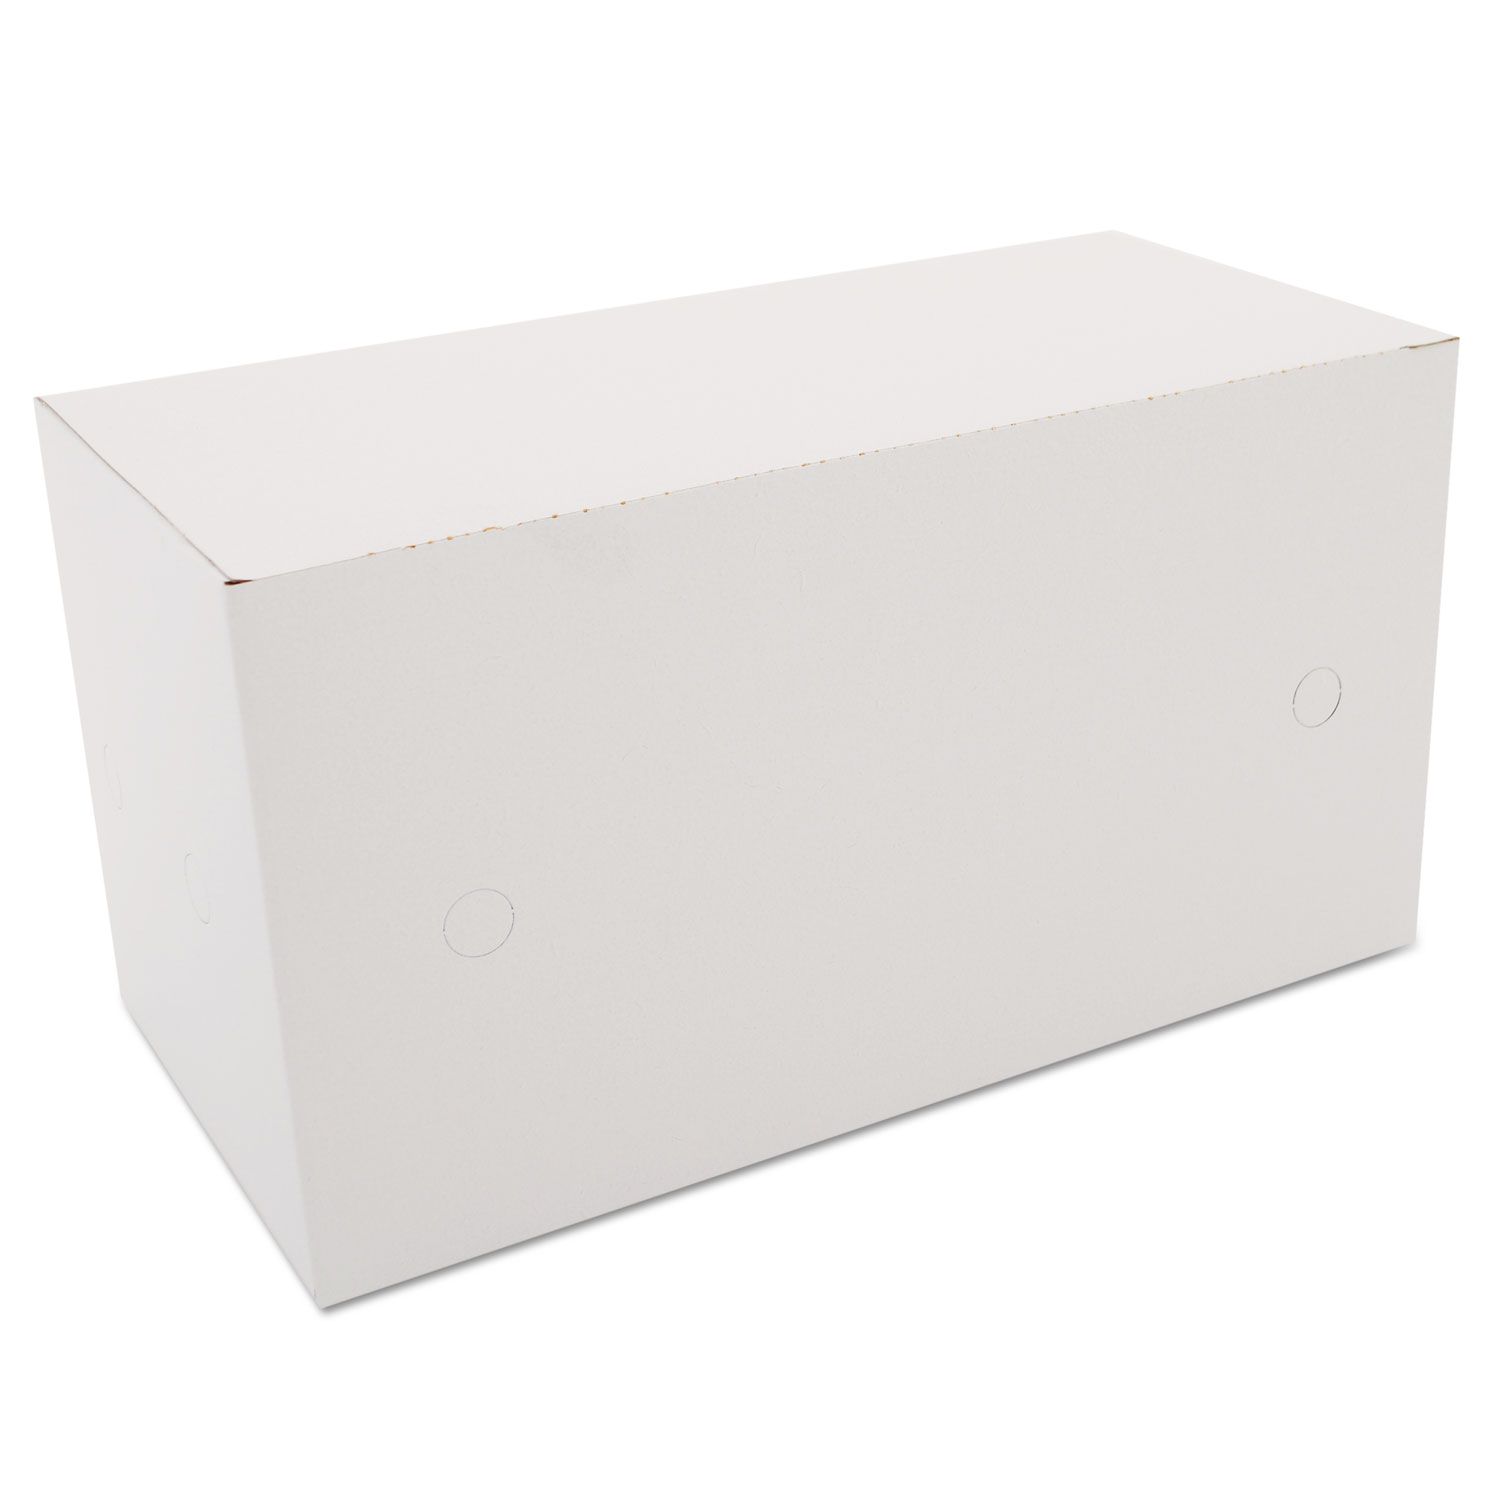 Sausage and Meat-Patty Boxes, 1-Compartment, 10 x 5 x 5 3/8, White, 200/Bundle